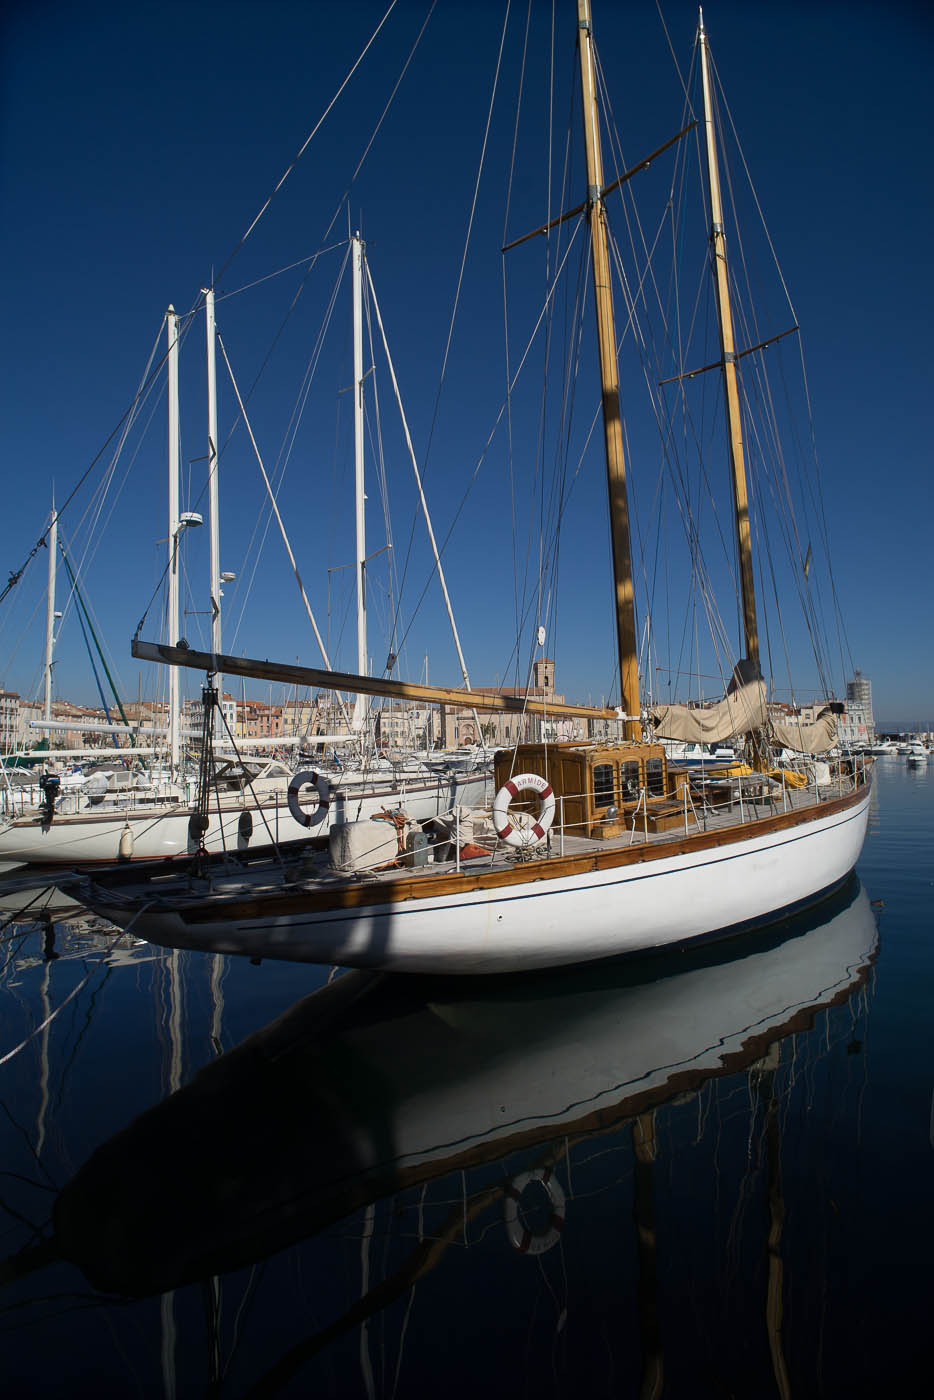 A classic wooden yacht in the old port of La Ciotat